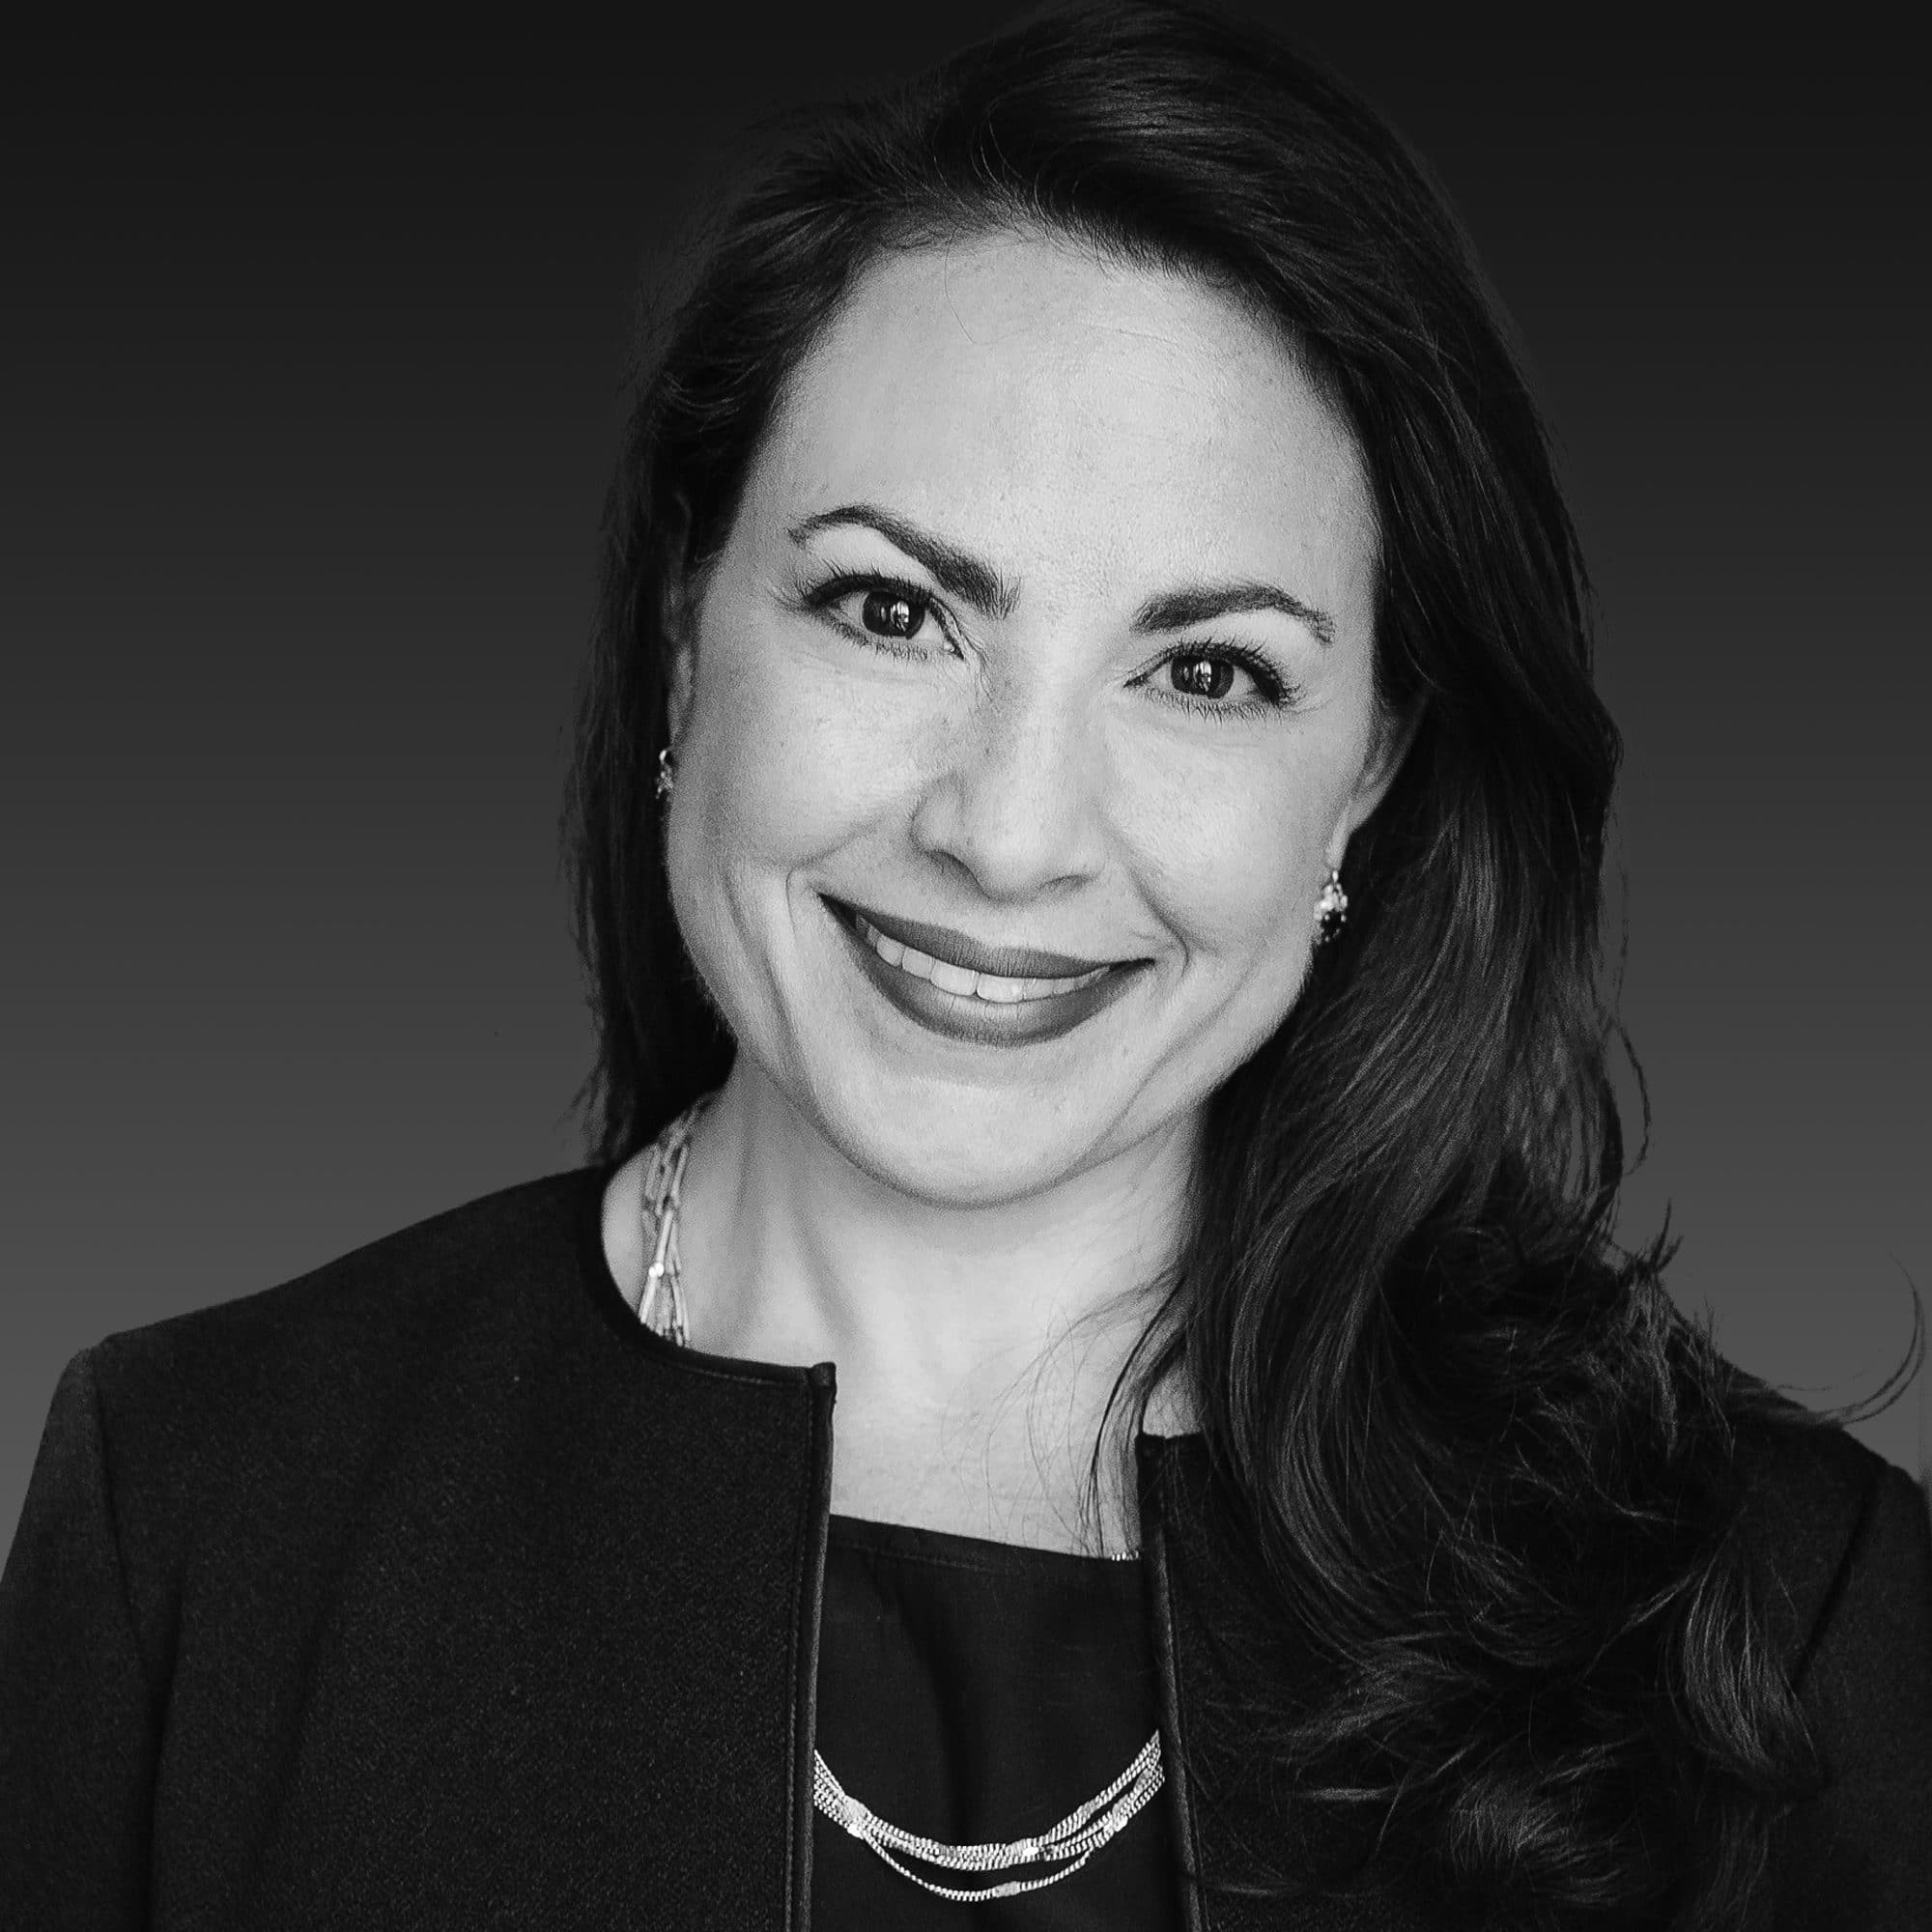 Lisa Caruso, Director of Marketing Communications